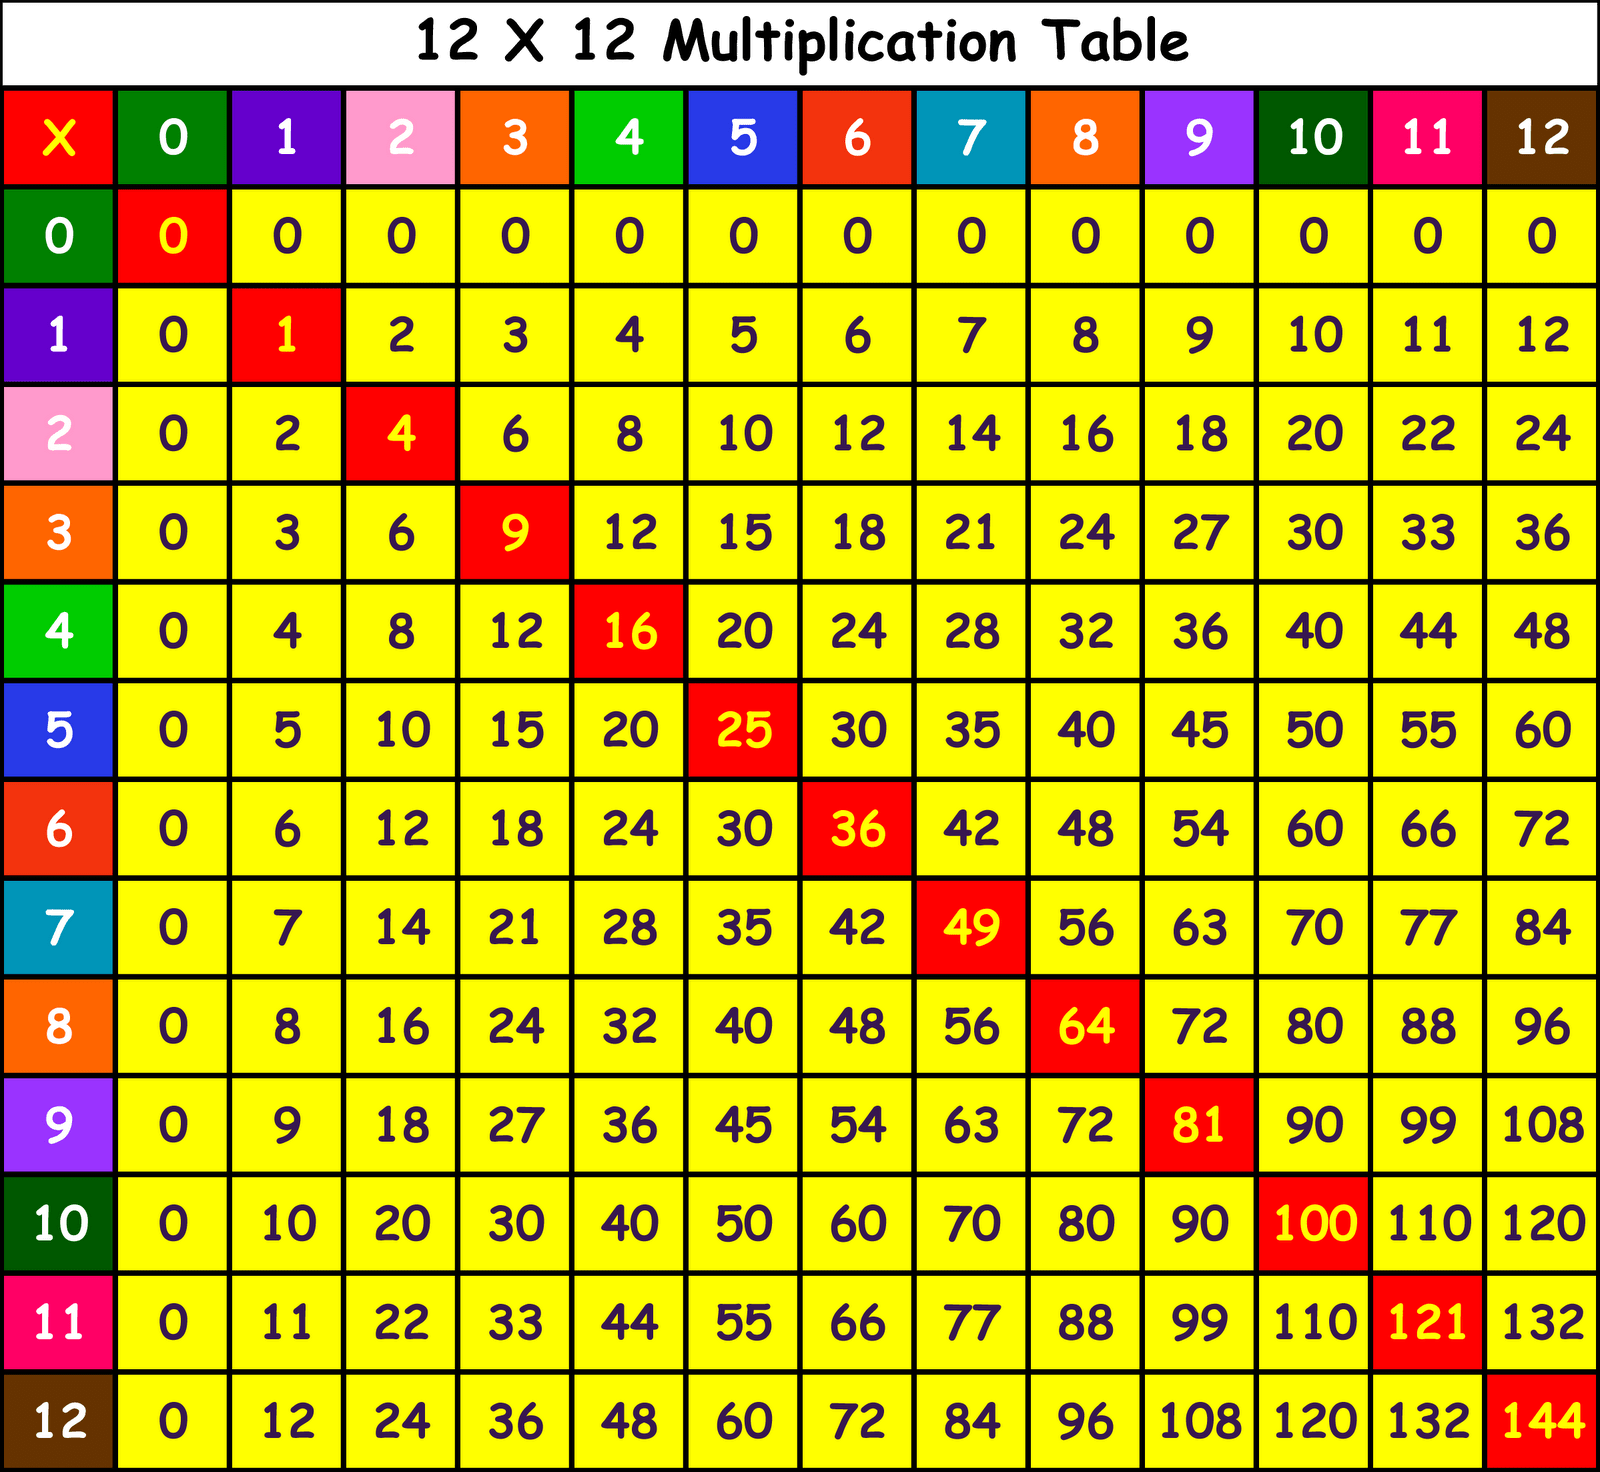 12 Multiplication Table In